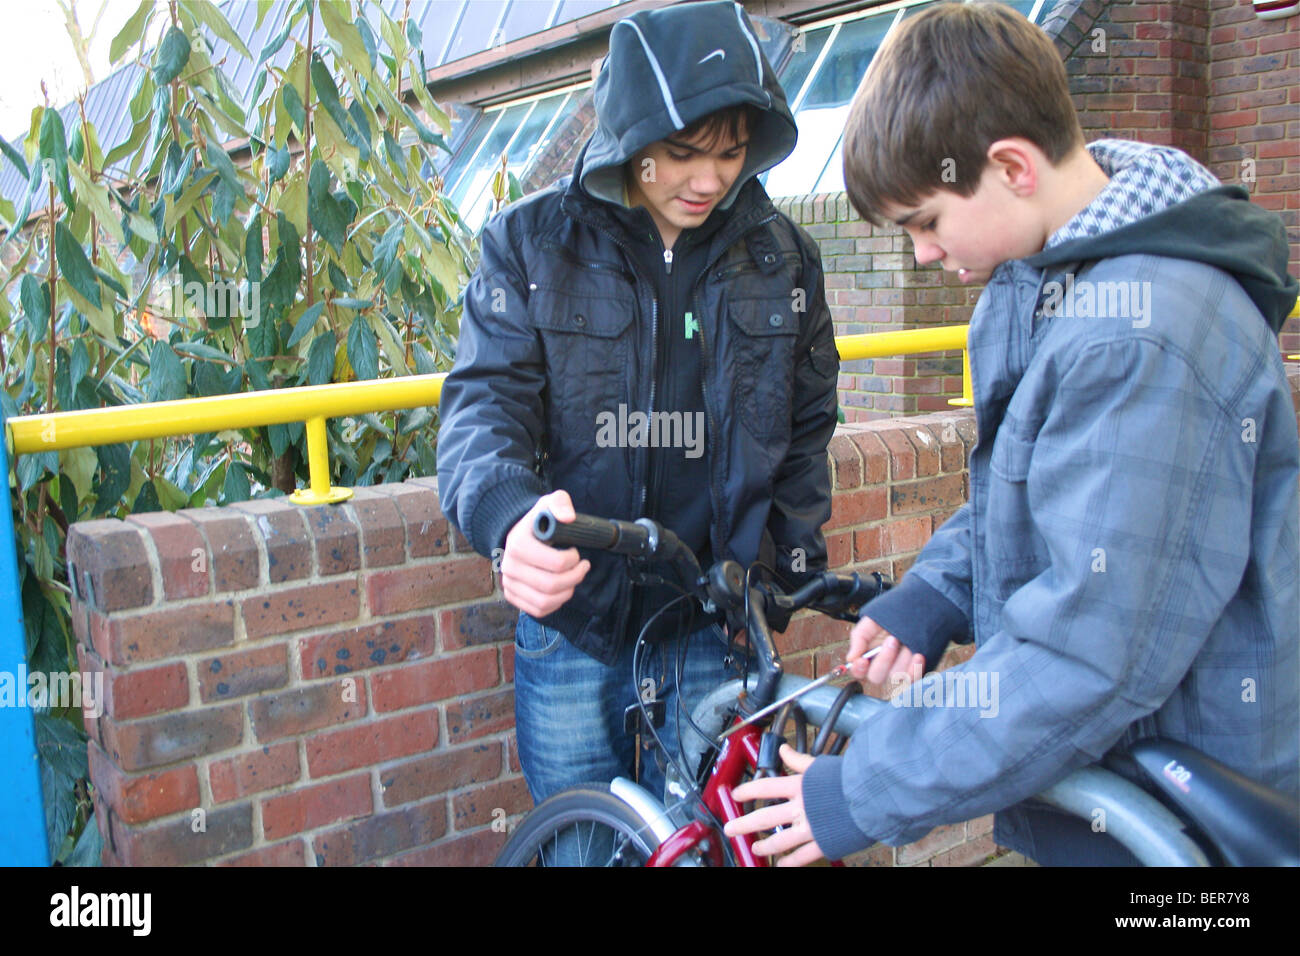 kids stealing a bicycle Stock Photo, Royalty Free Image ...